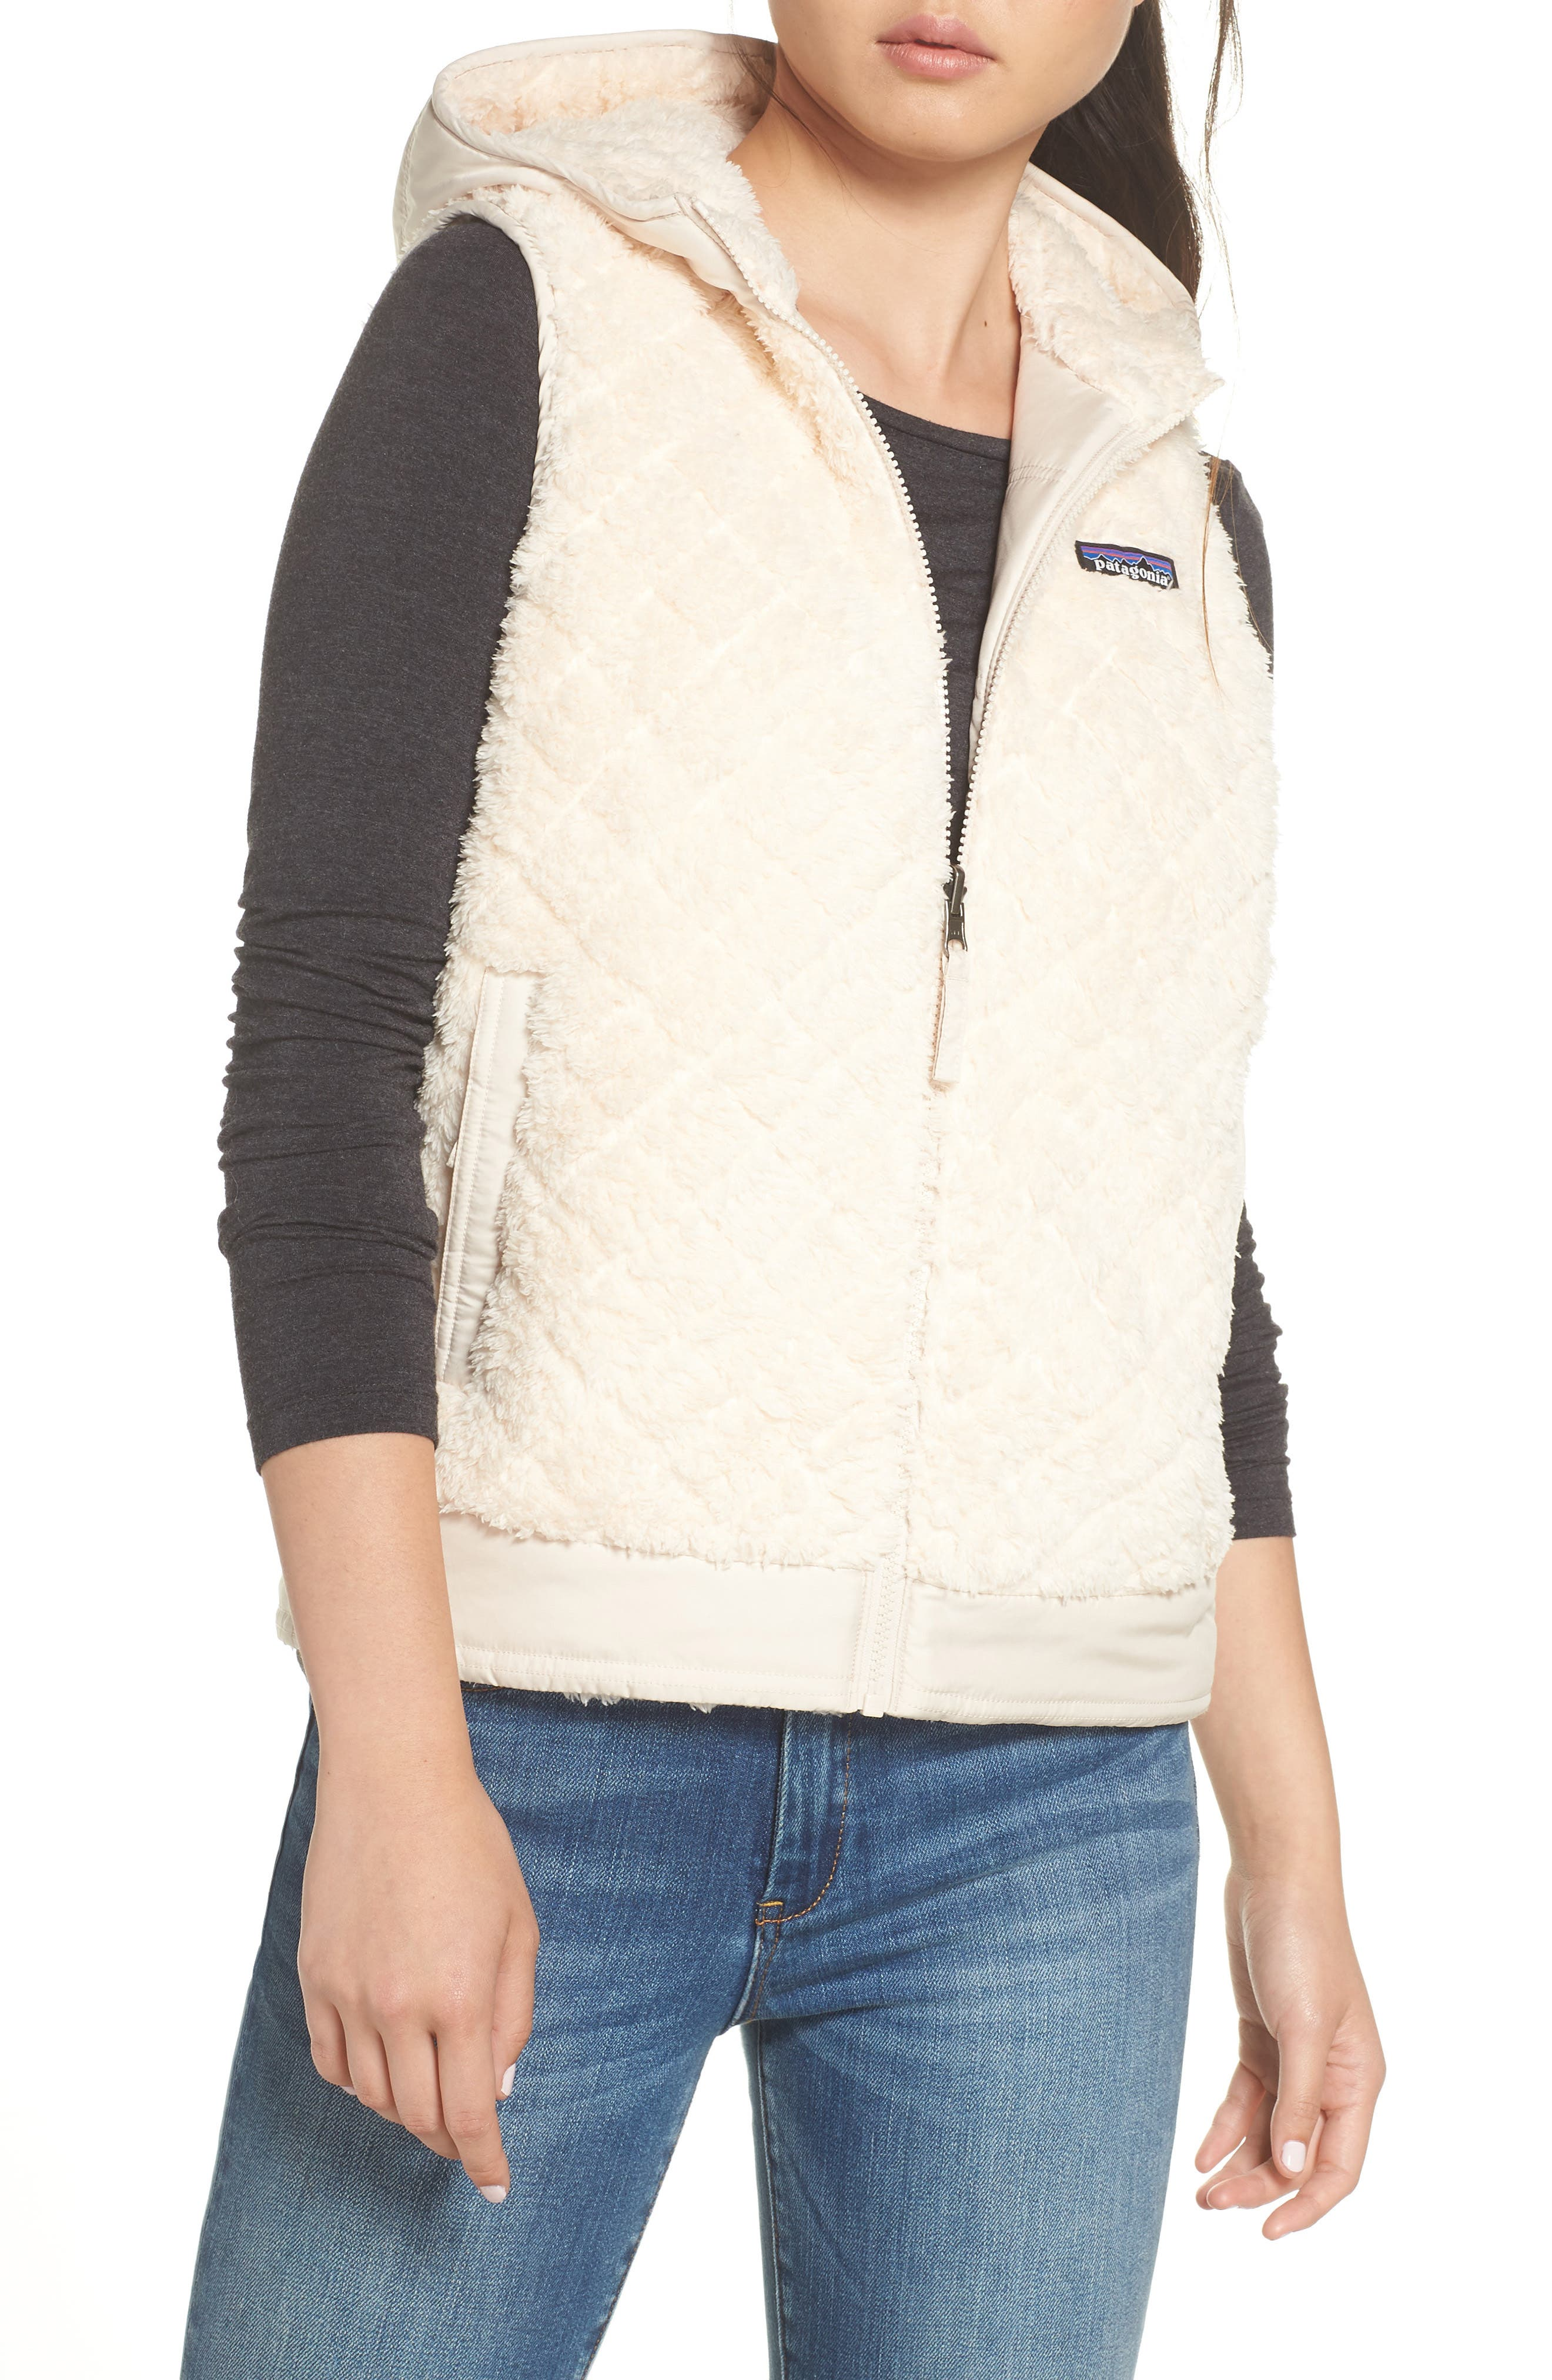 PATAGONIA Los Gatos Reversible Vest, Main, color, 251